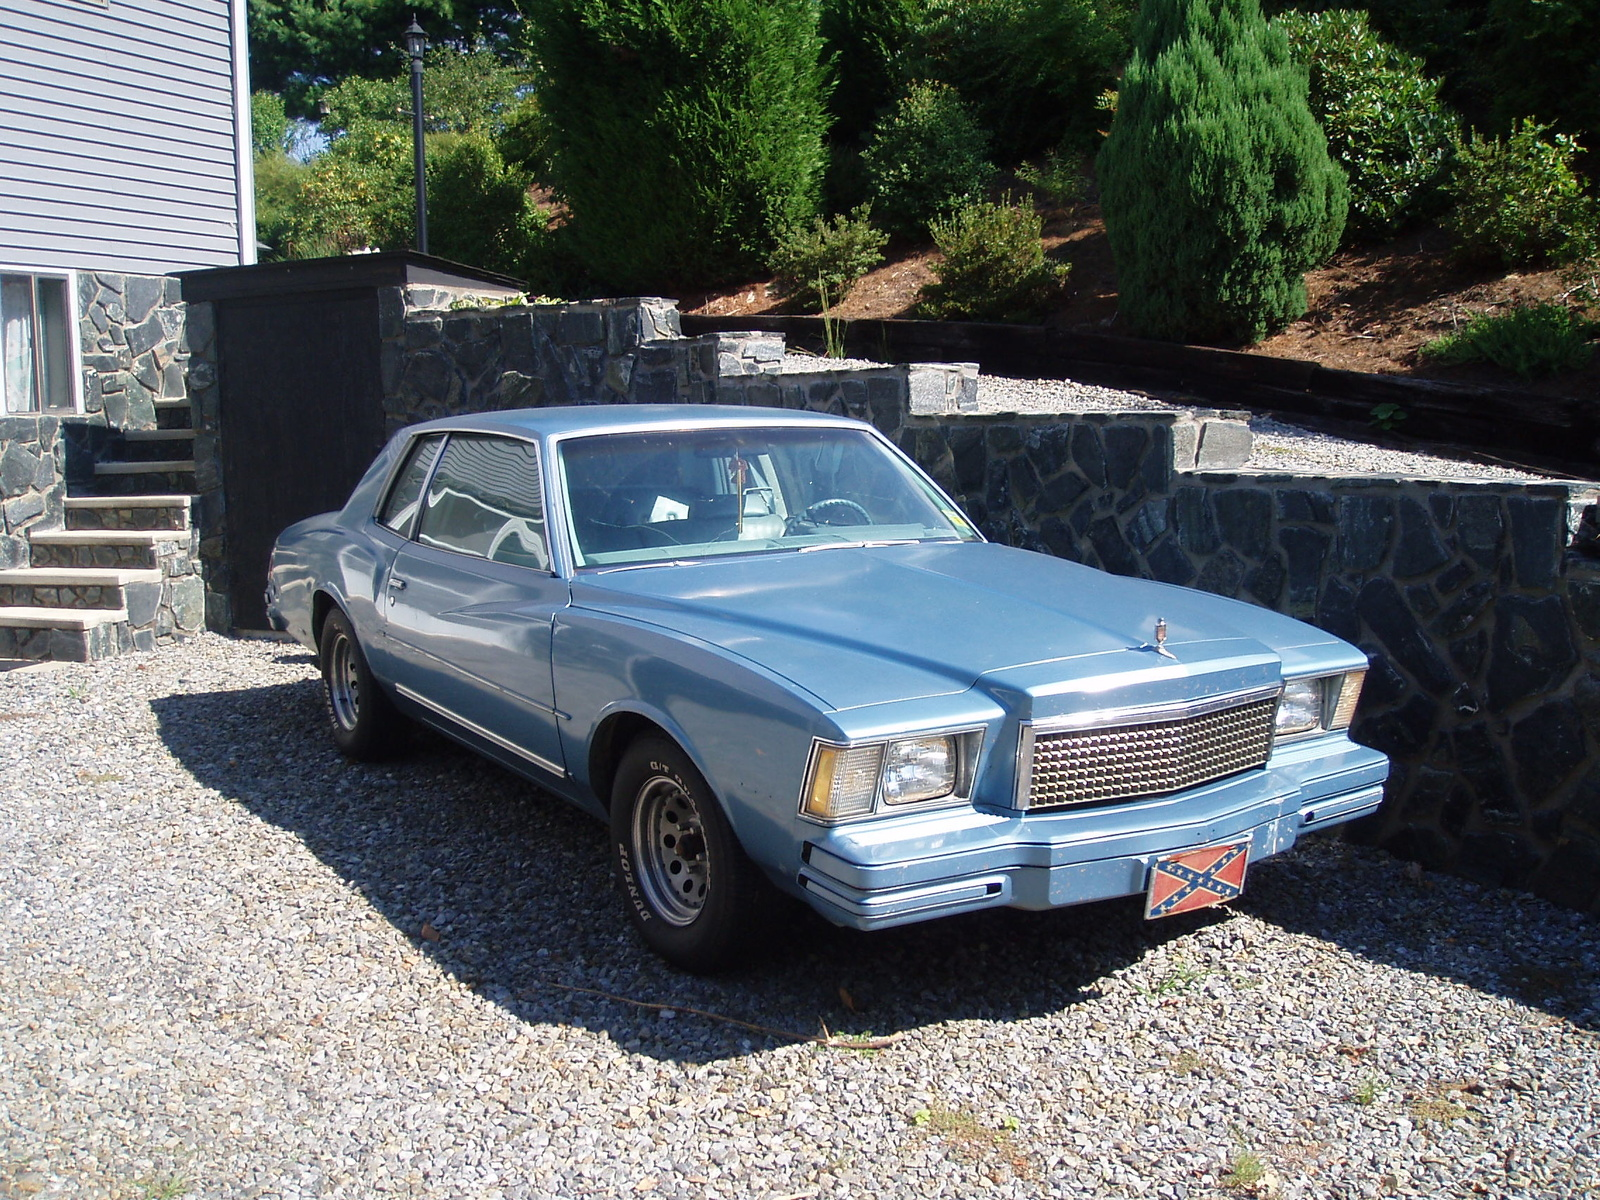 Chevy Silverado 2001 For Sale 1978 Chevrolet Monte Carlo - Pictures - CarGurus